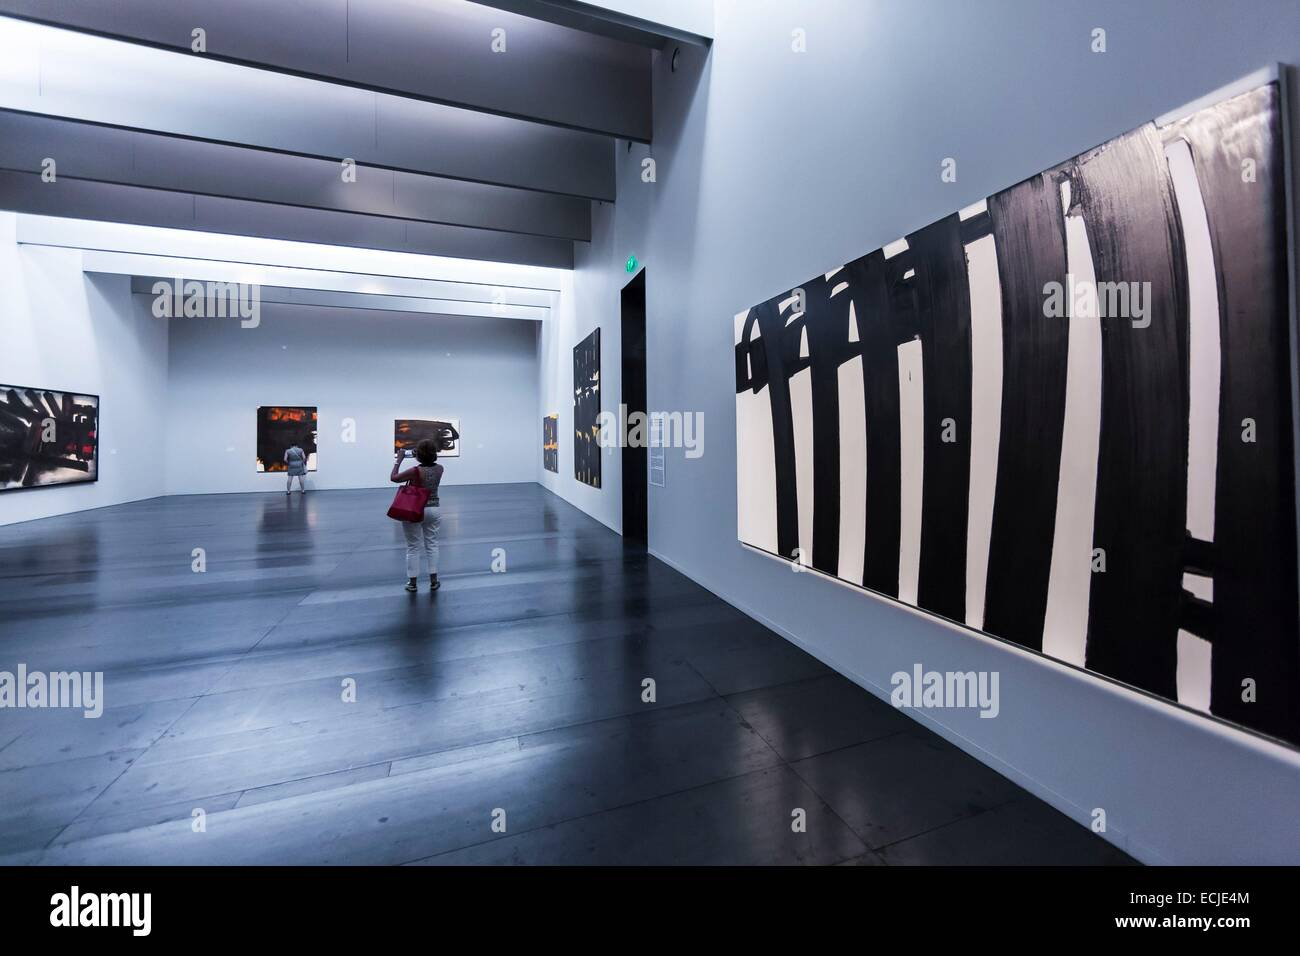 France, Aveyron, Rodez, Soulages Museum, designed by the Catalan architects RCR associated with Passelac & Roques - Stock Image